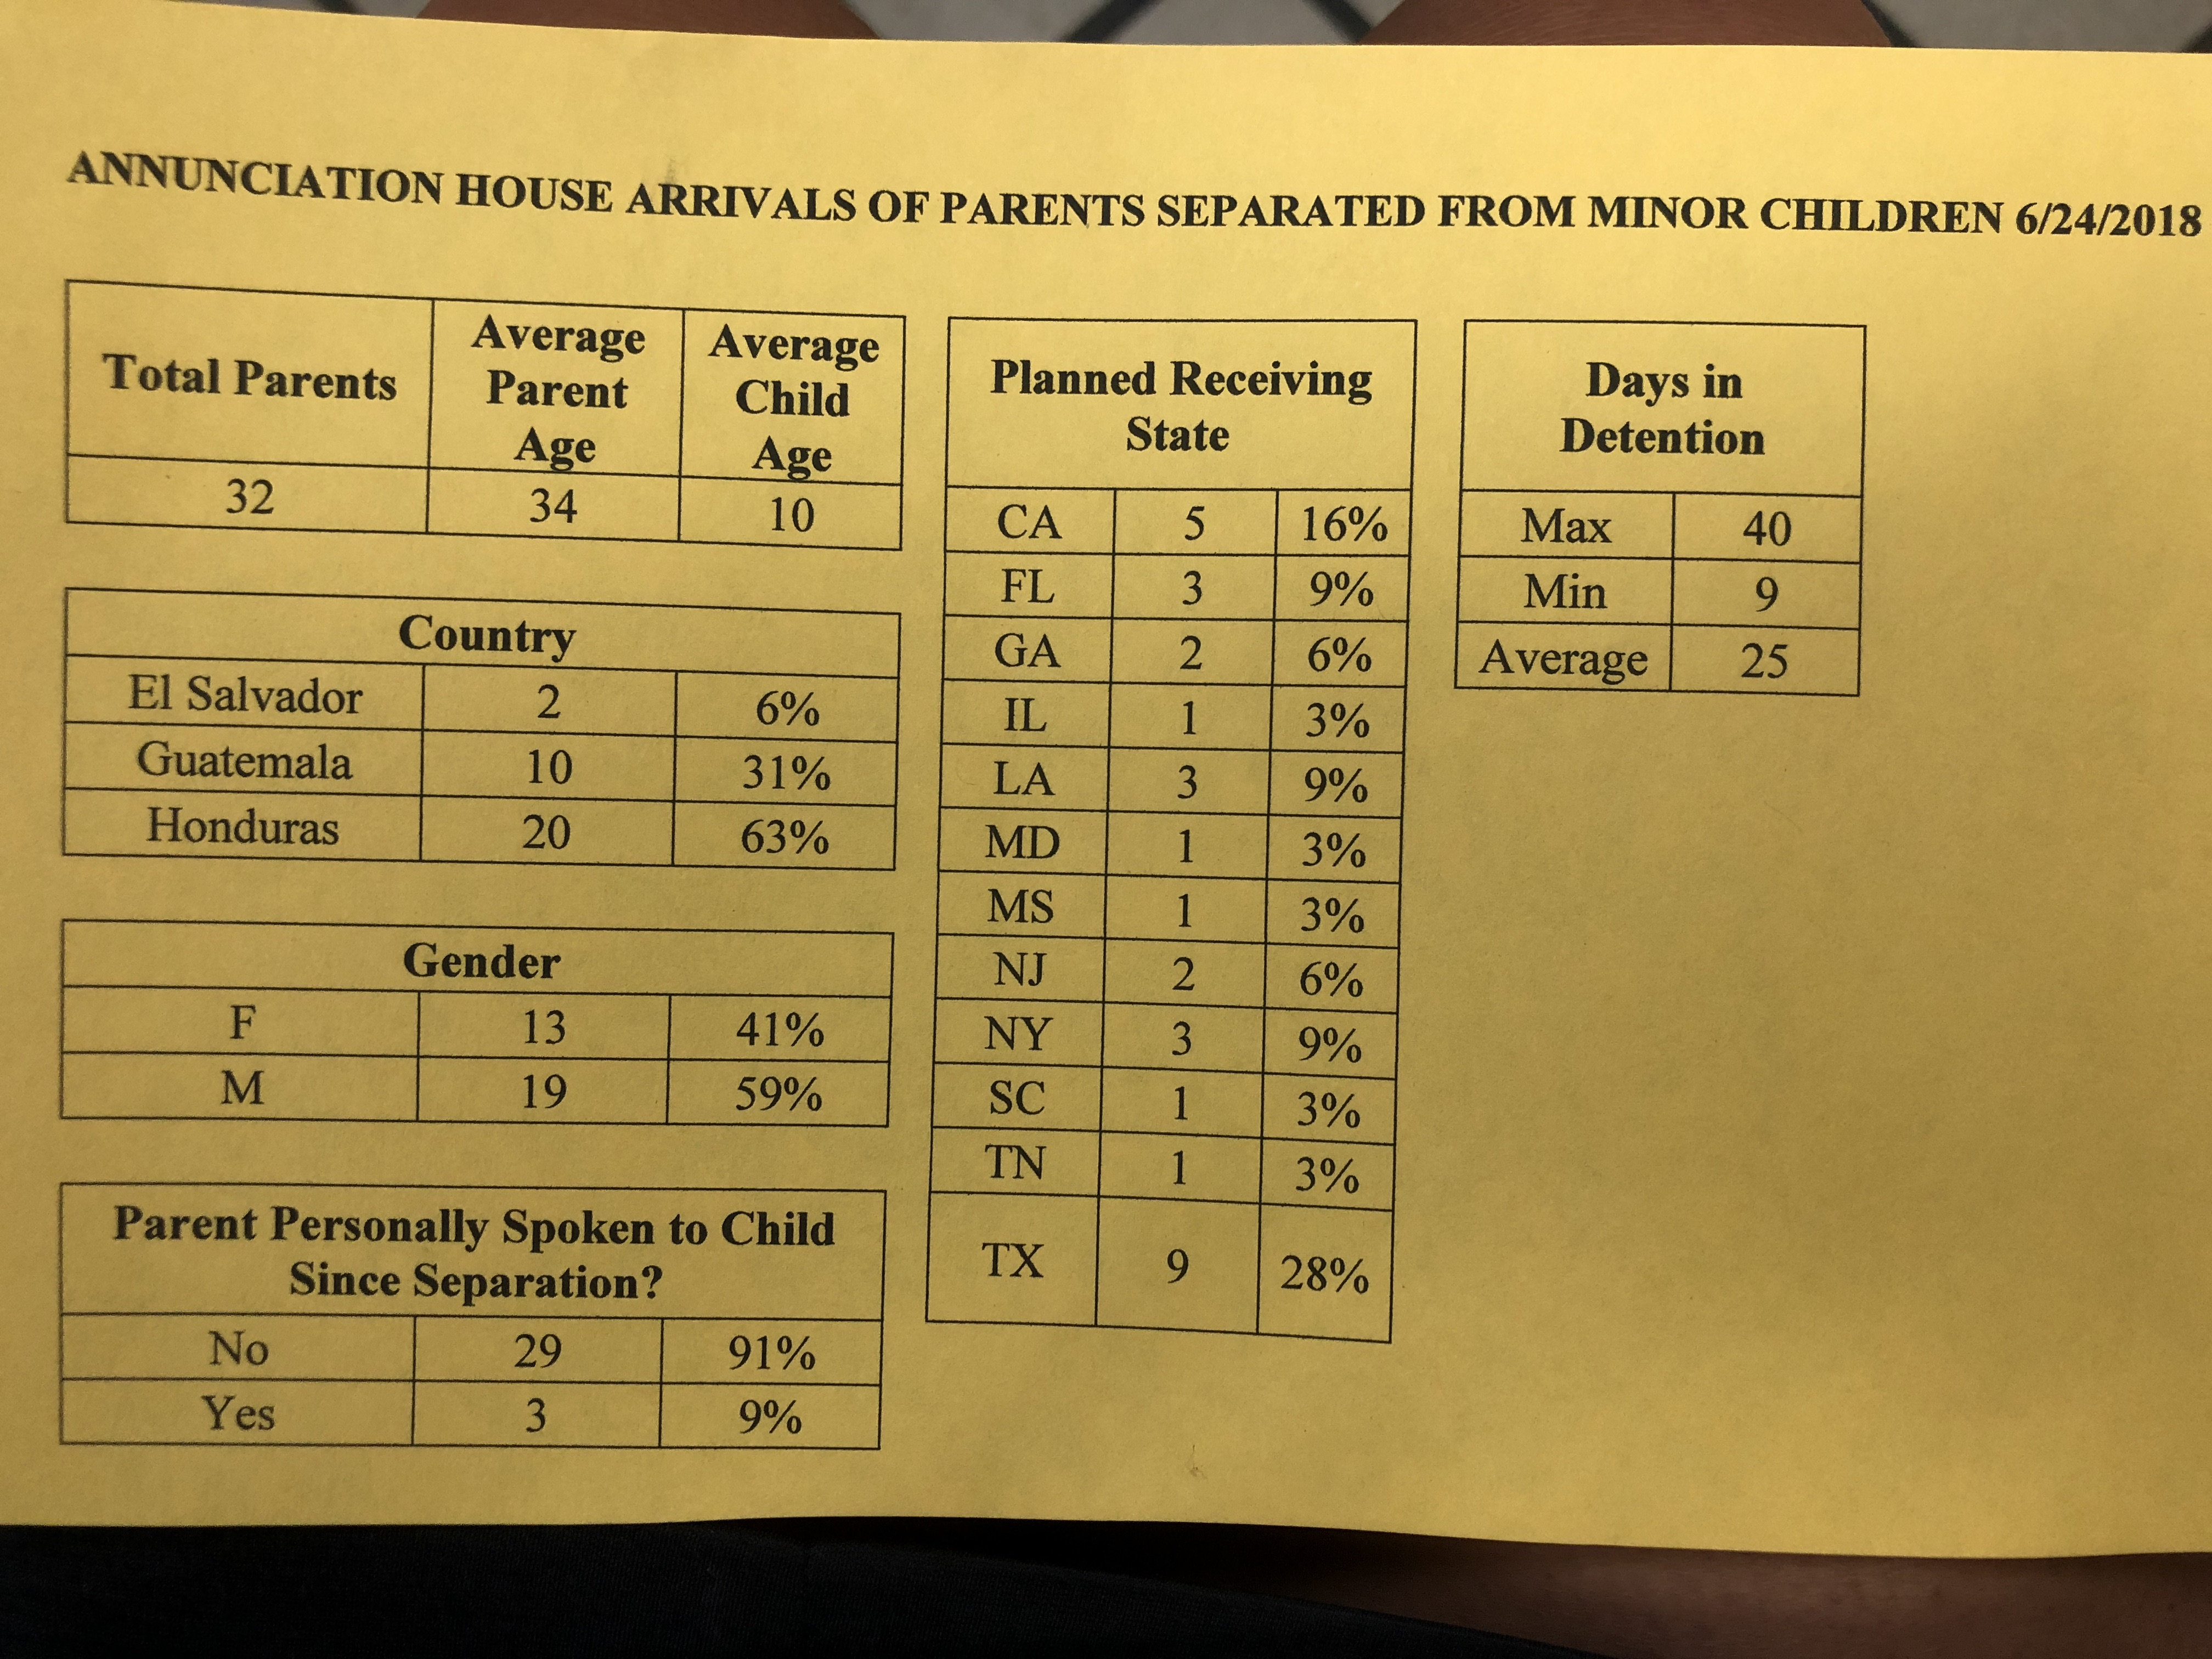 A handout provided by the Annunciation House in El Paso, Texas, shows data on 32 parents released by U.S. Customs and Border Protection agents.